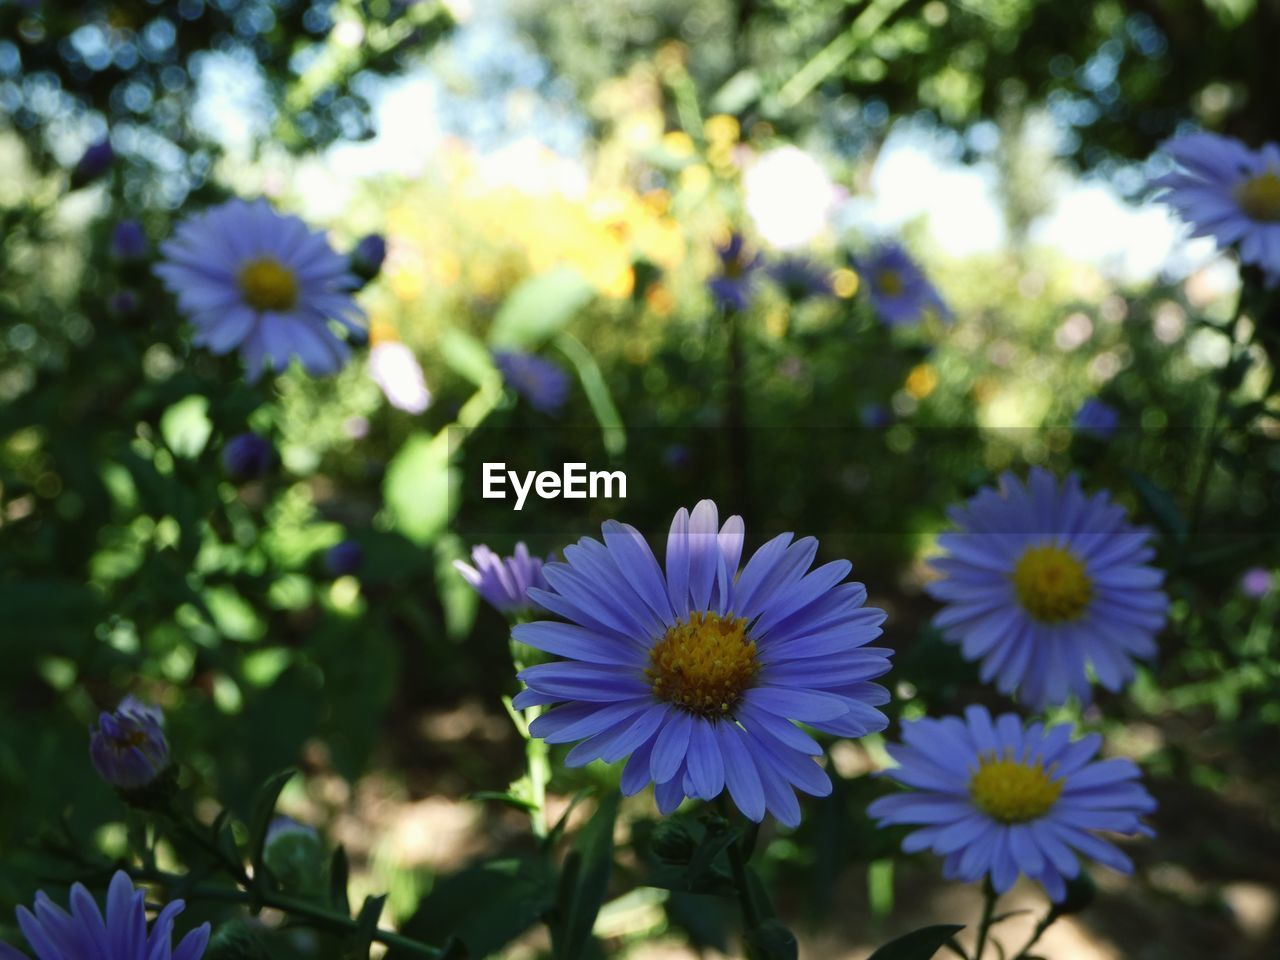 flowering plant, flower, plant, vulnerability, freshness, fragility, growth, beauty in nature, petal, close-up, flower head, inflorescence, focus on foreground, nature, no people, day, purple, sunlight, outdoors, osteospermum, pollen